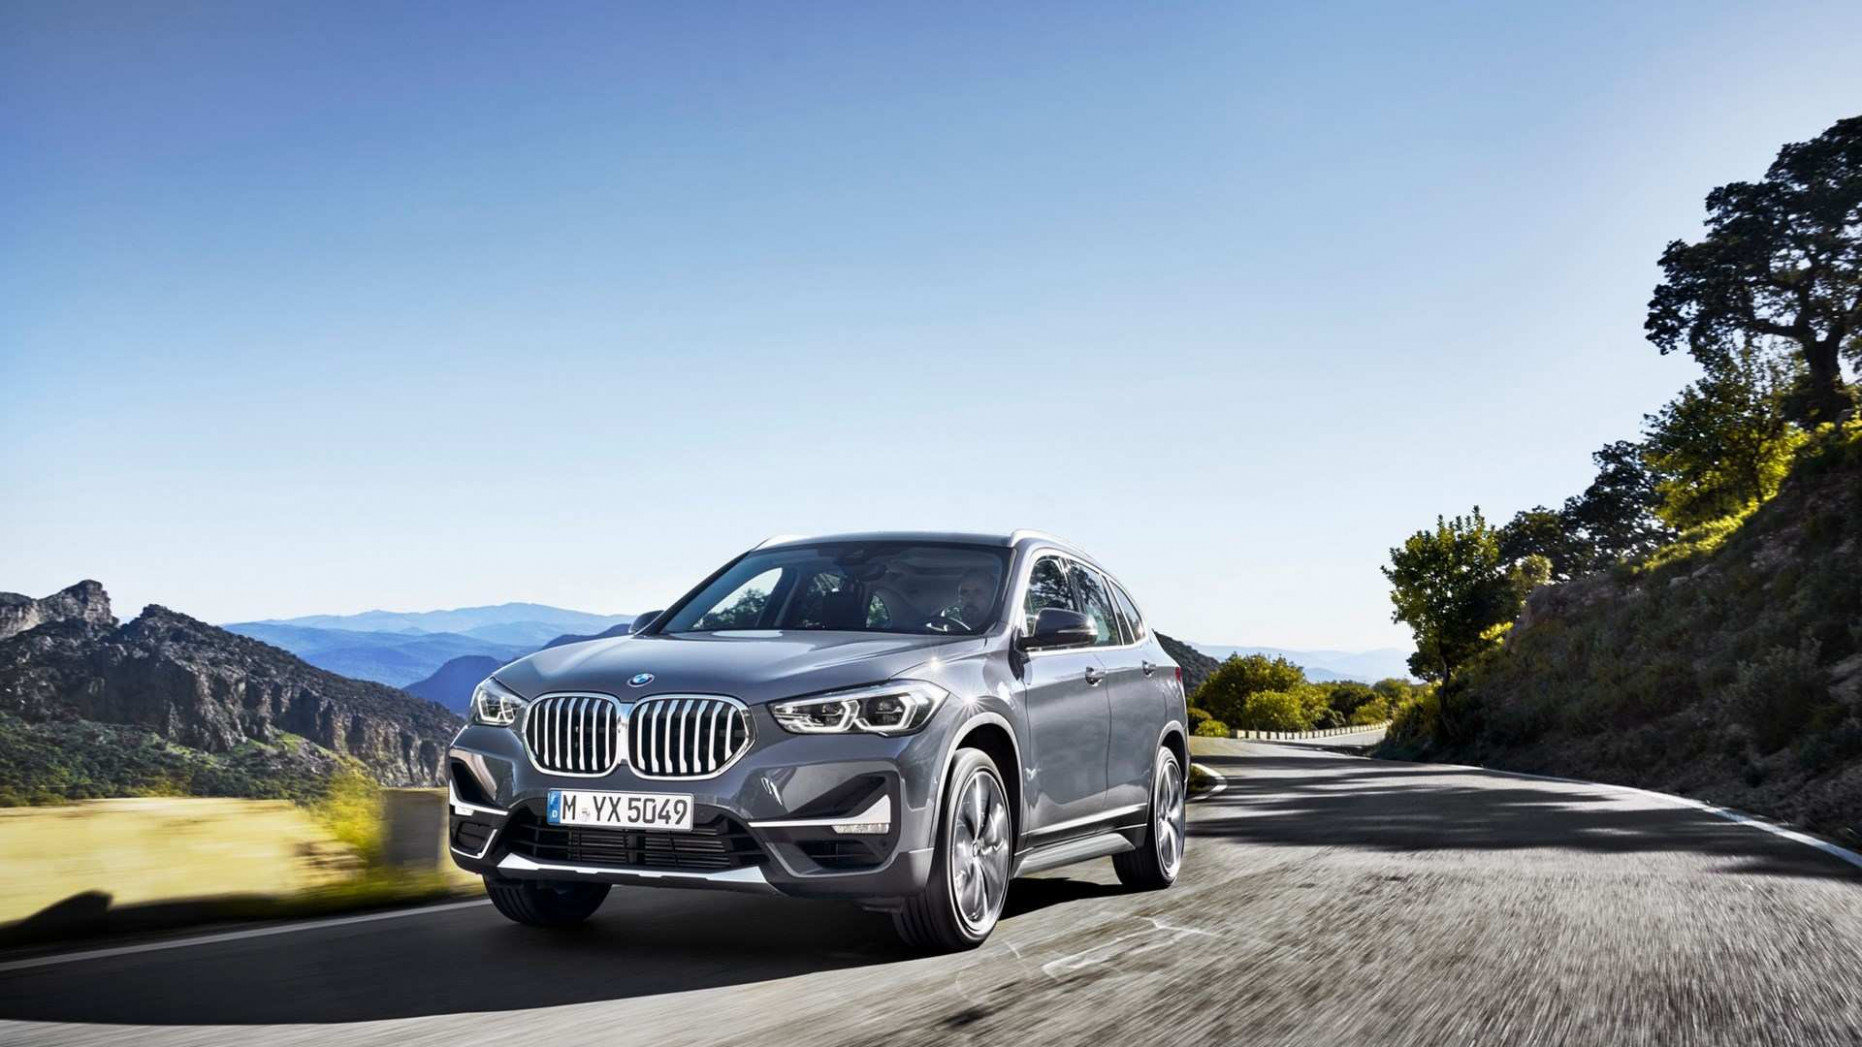 6 New Bmw Ute 6 Pictures with Bmw Ute 6 - Car Review : Car ...